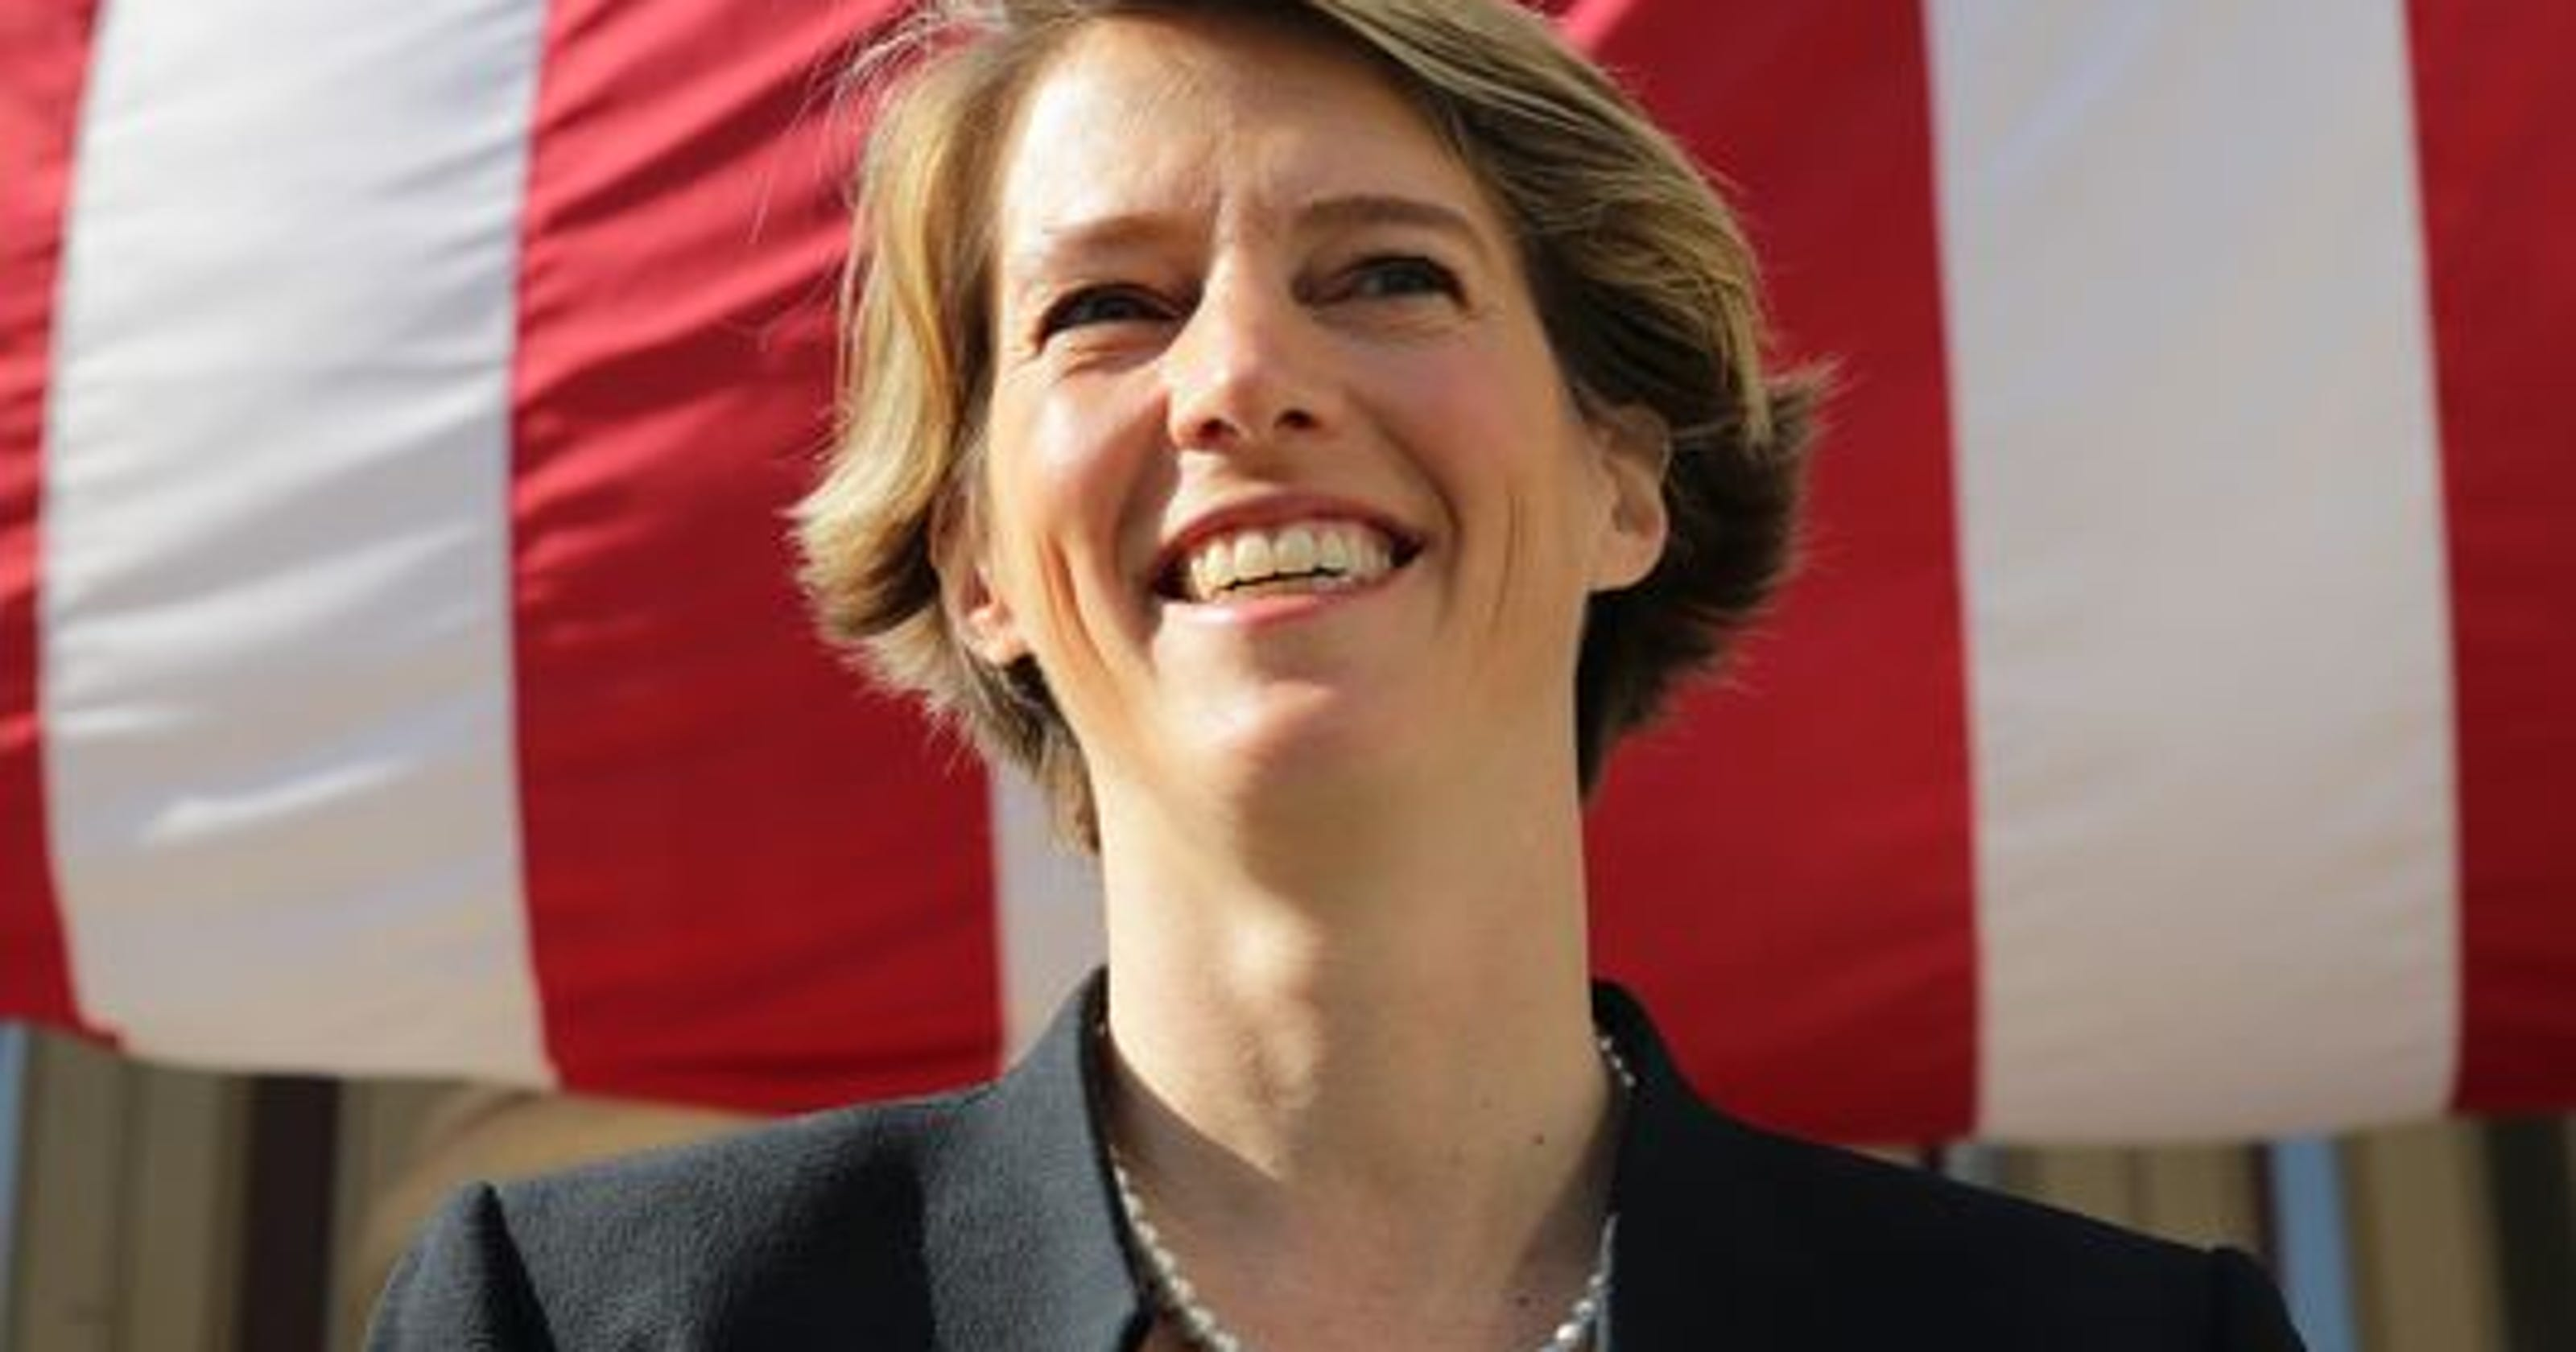 Teachout, Wu sue state Democrats over pro-Cuomo mailers